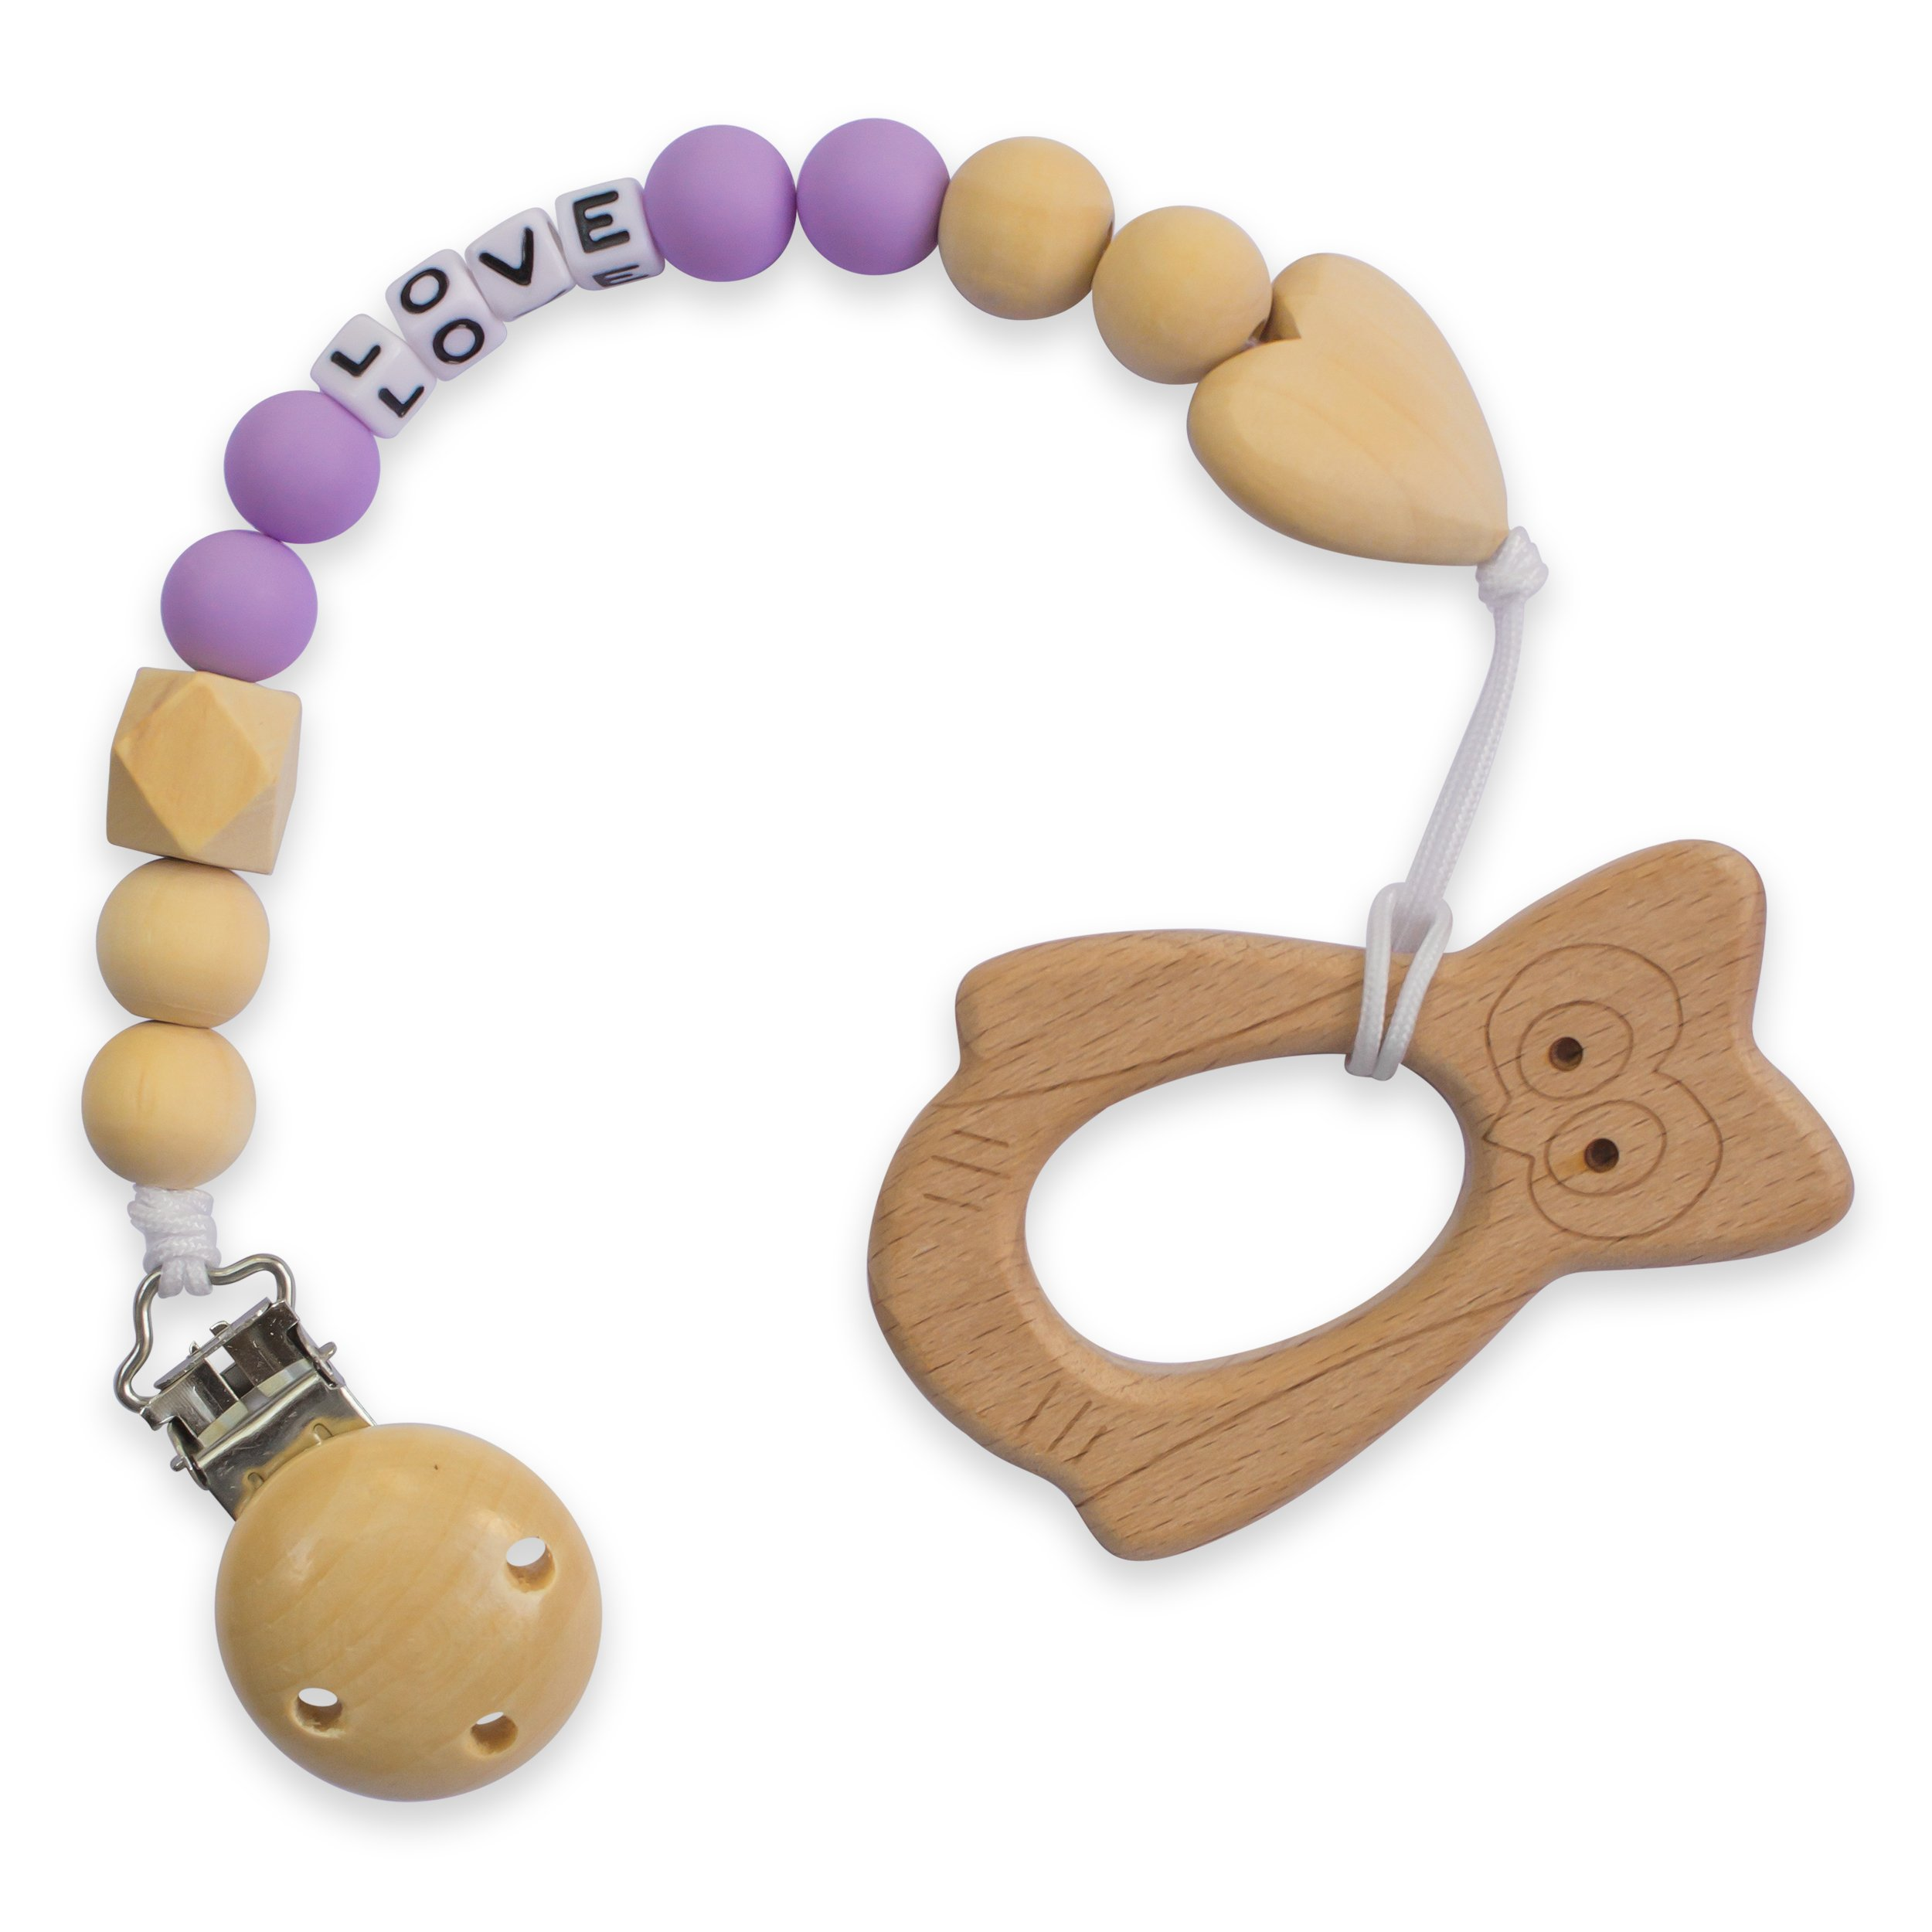 ANPEI ChewChew Buds Organic Wood Teether Toy & Chewable Beads Wooden Teething Pacifier Clip | Natural and Effective Teething Pain Relief for Babies & Toddlers – Owl